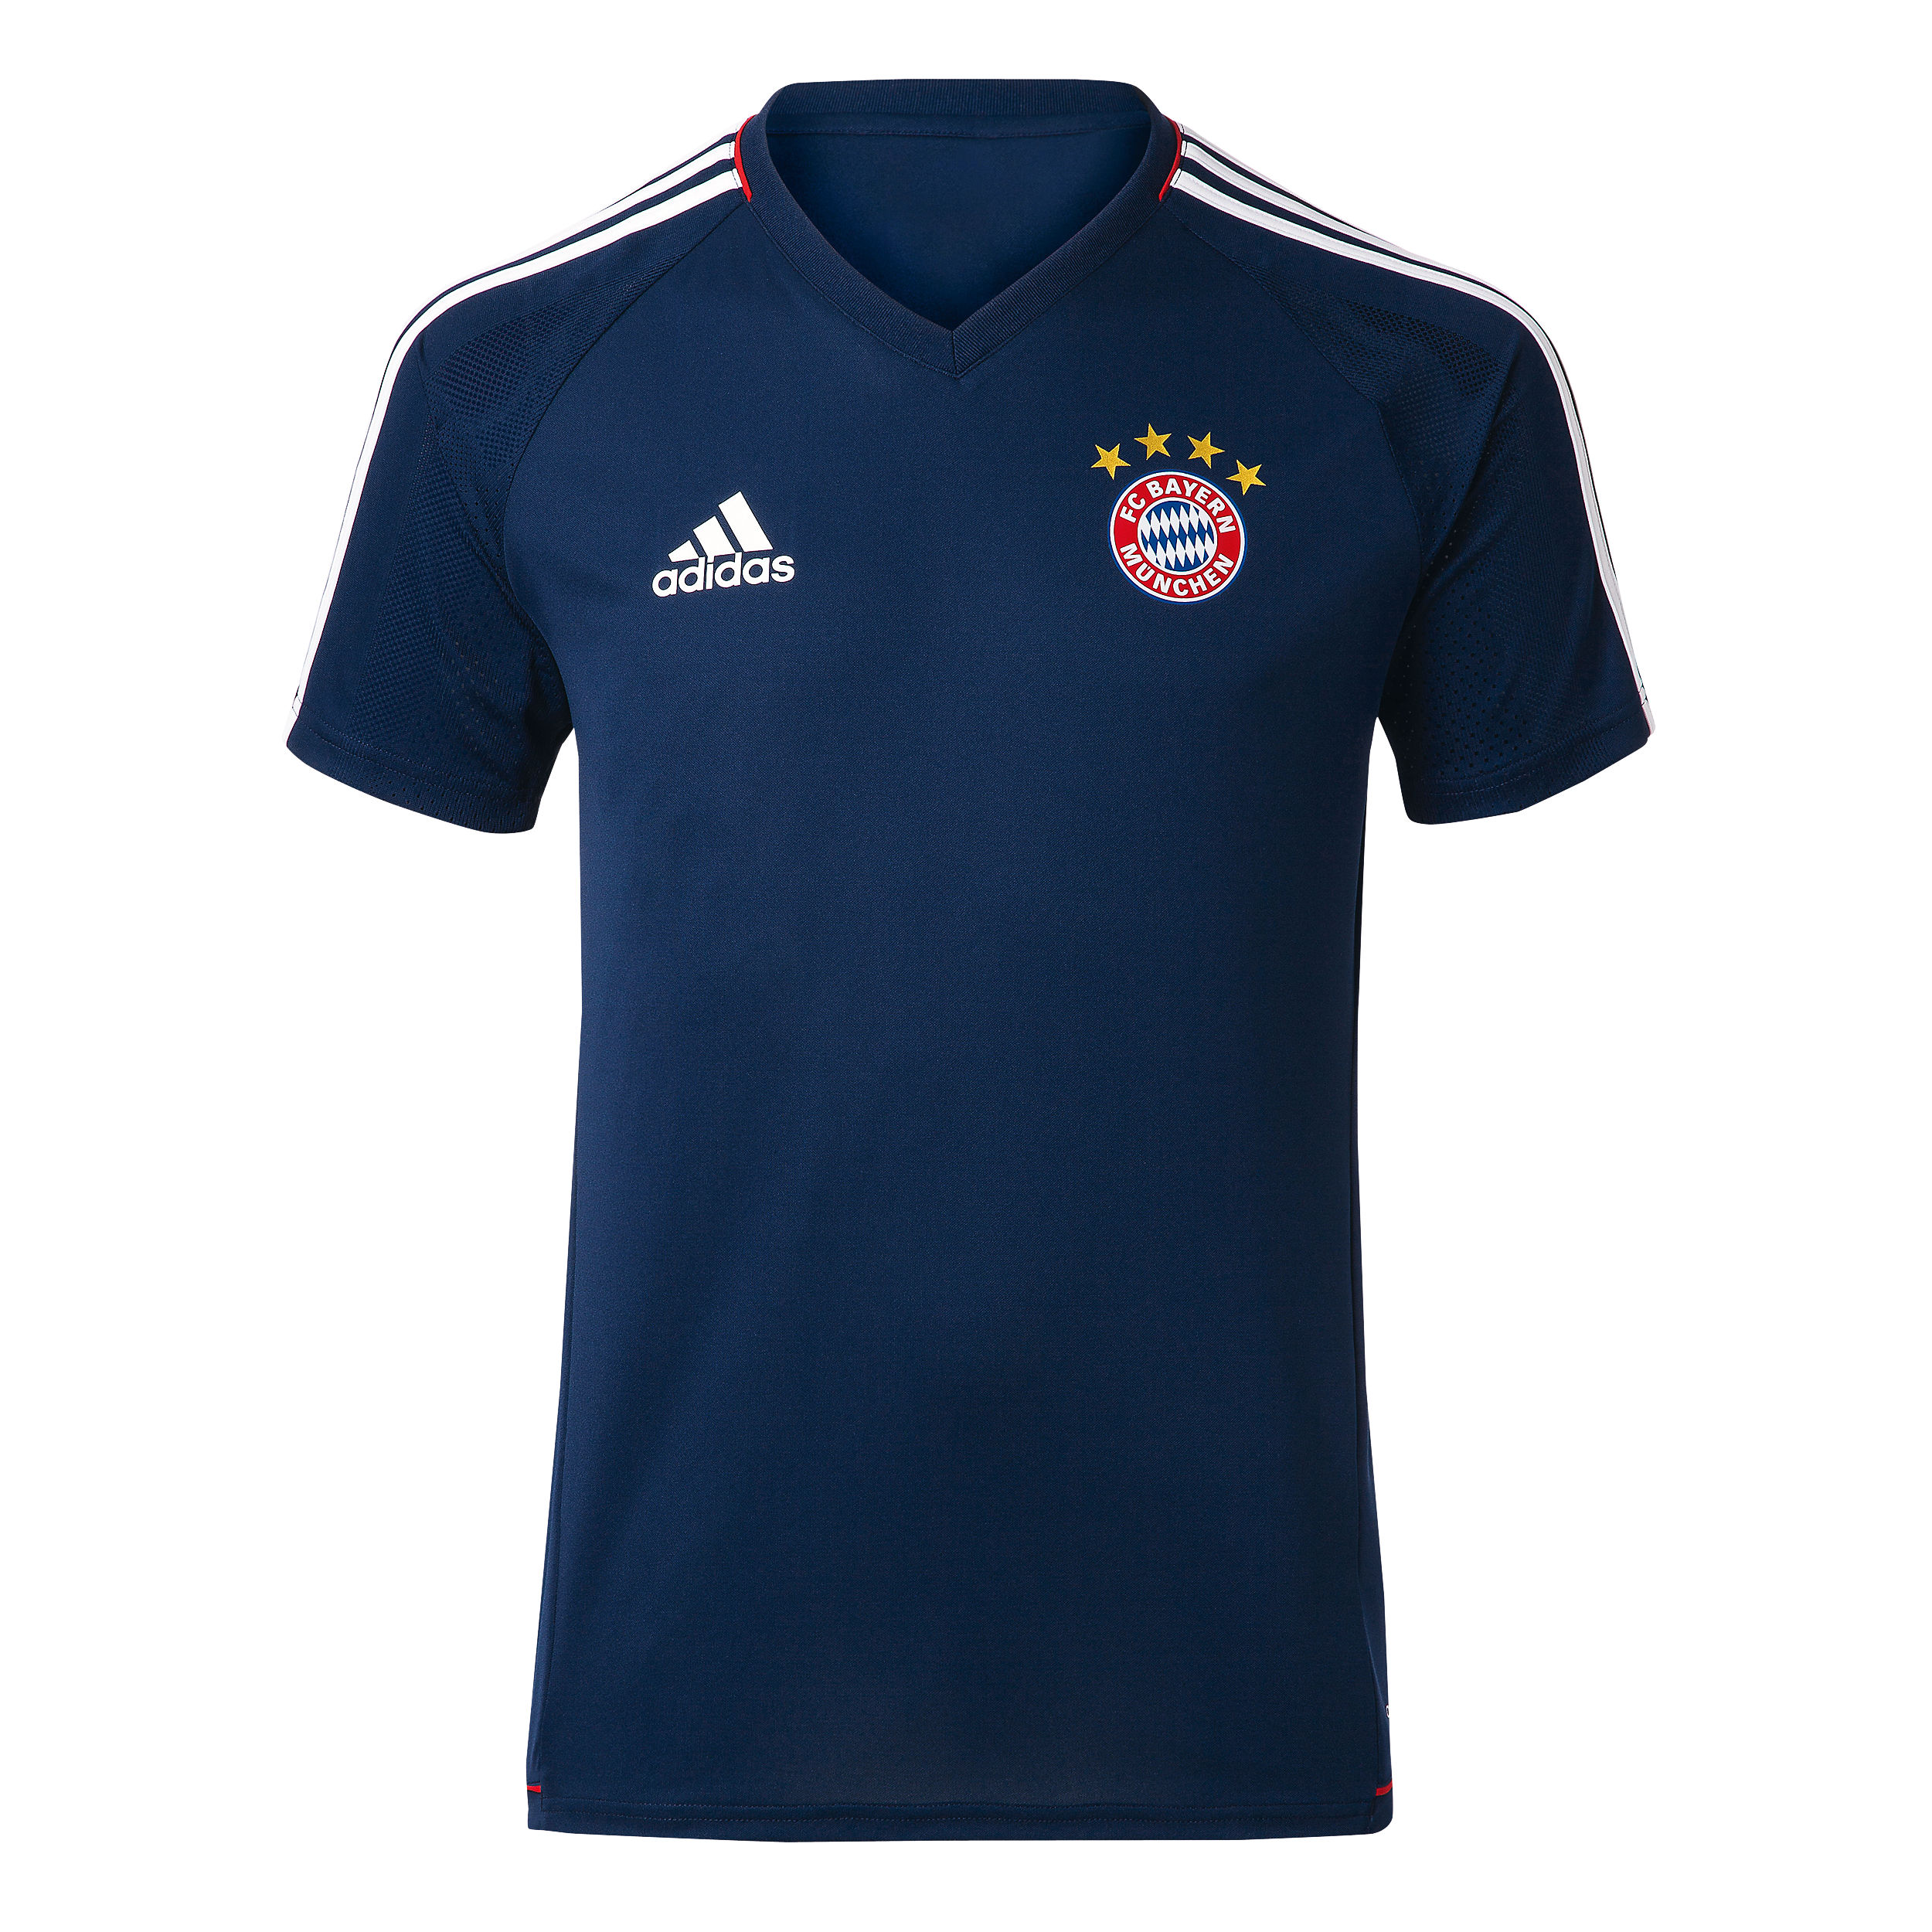 Adidas shirt design your own